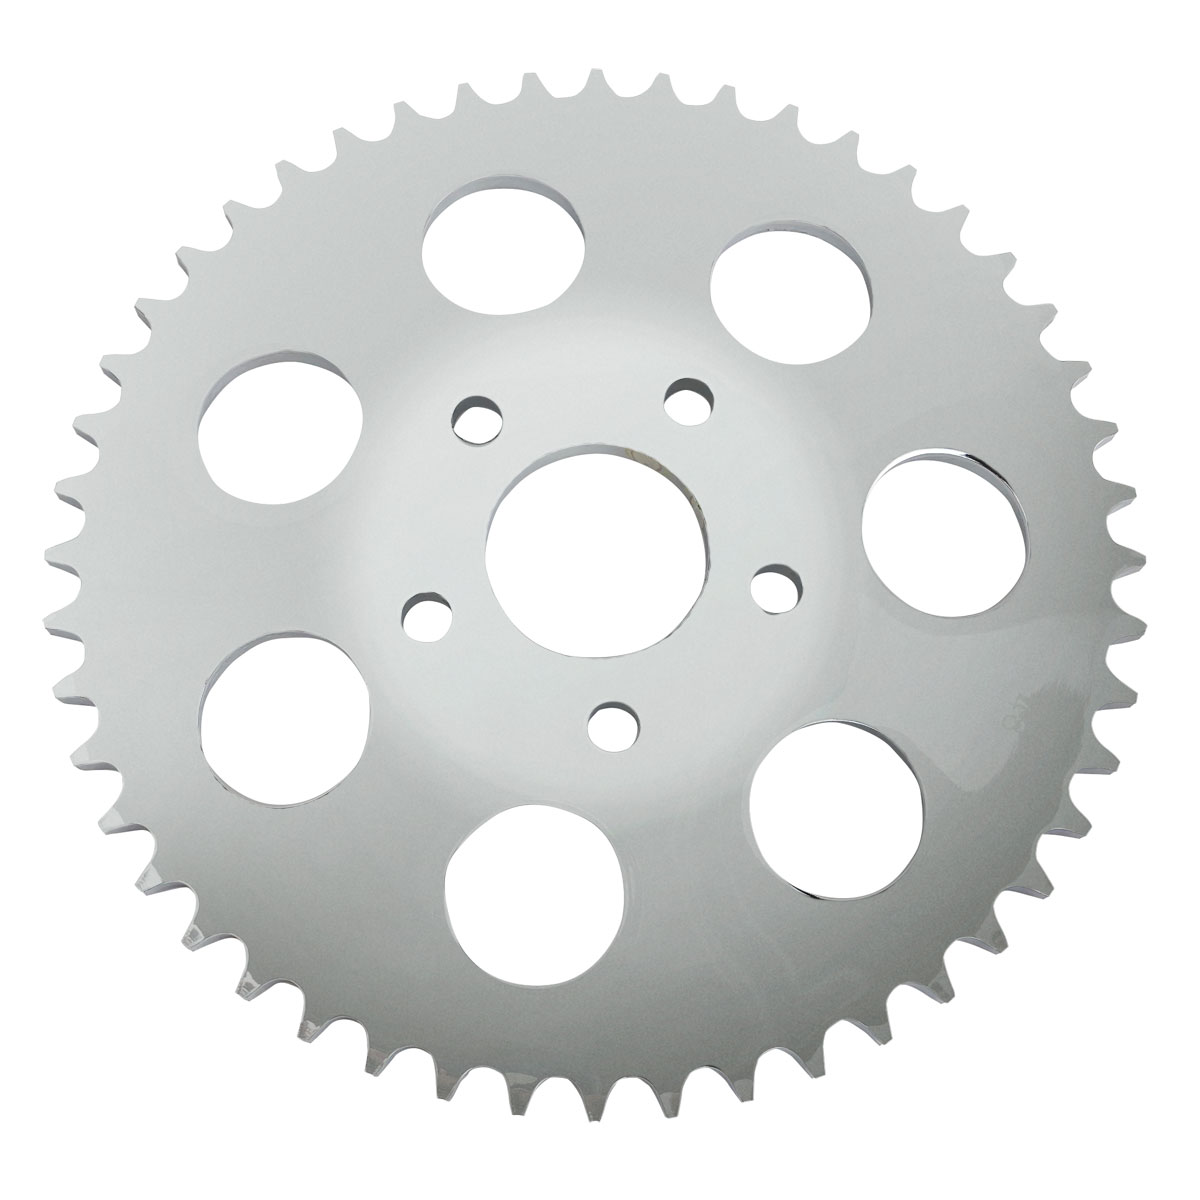 J&P Cycles® 48 Tooth Rear Chain Drive Sprocket